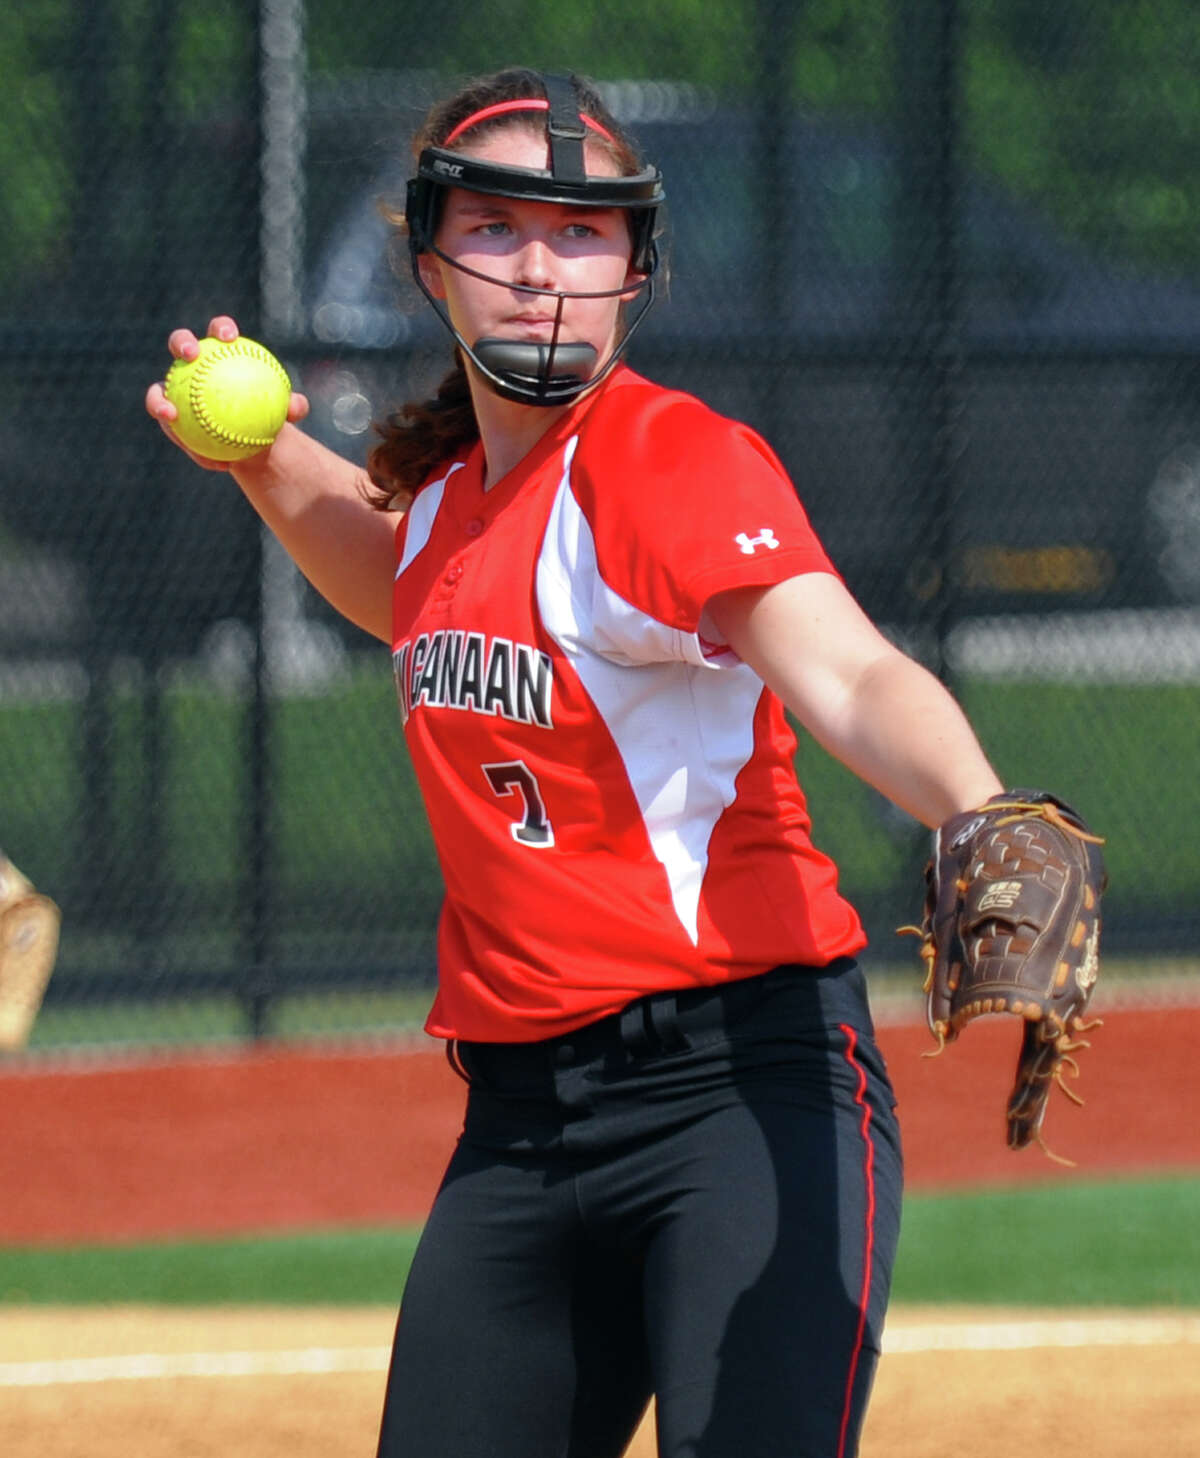 New Canaan's Ali Reilly, during FCIAC Softball Championship semi-final action against Fairfield Ludlowe at Sacred Heart University in Fairfield, Conn. on Tuesday May 21, 2013.